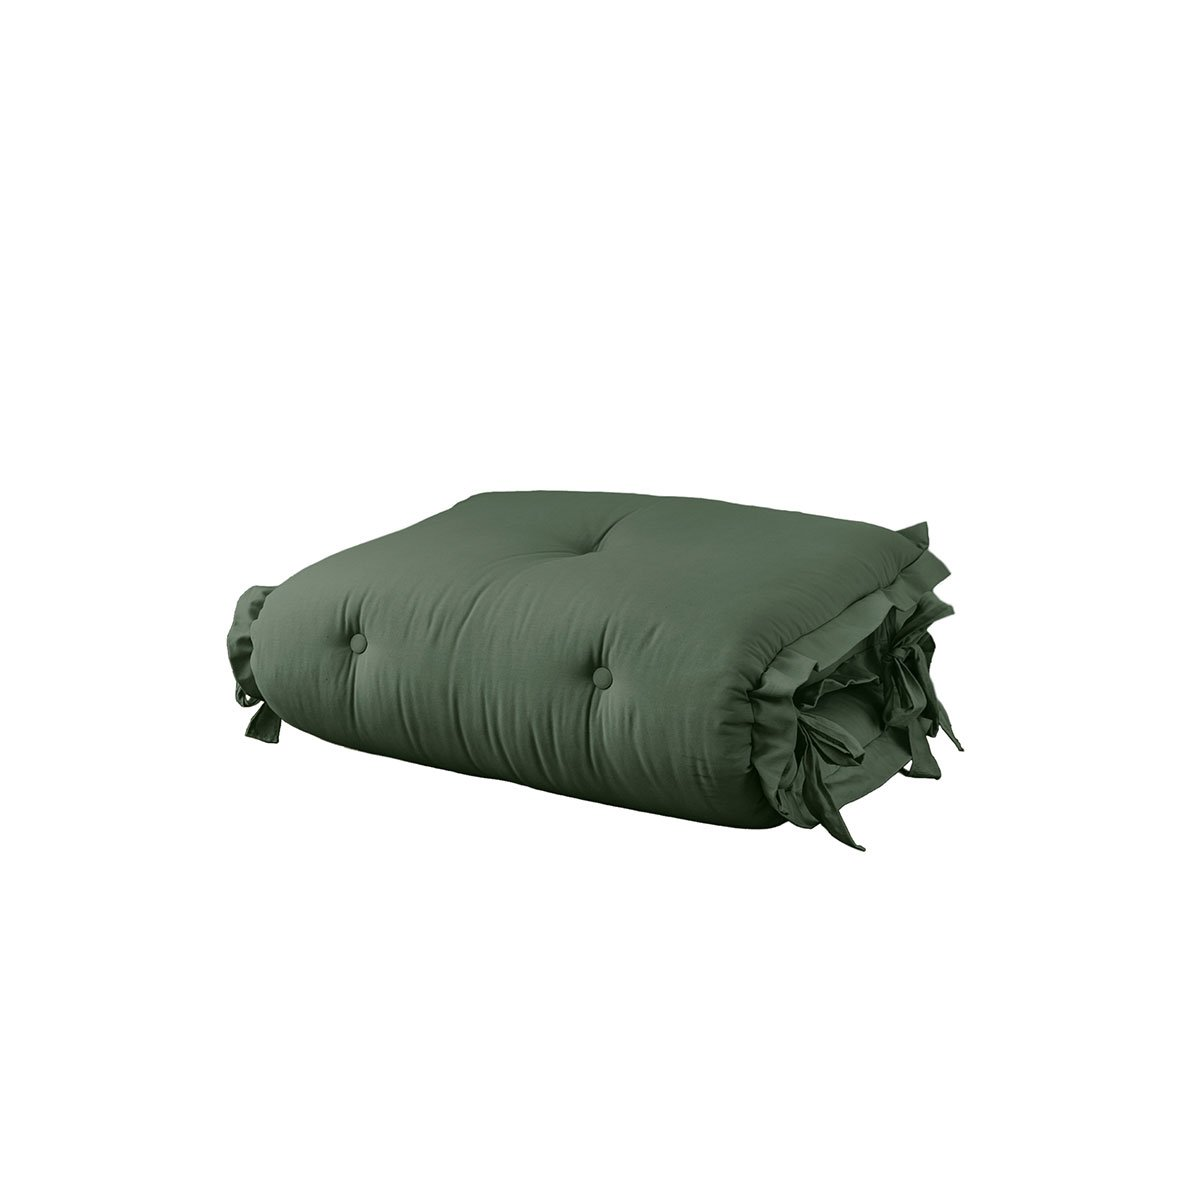 KARUP DESIGN Variabilní matrace Sit And Sleep – Olive Green